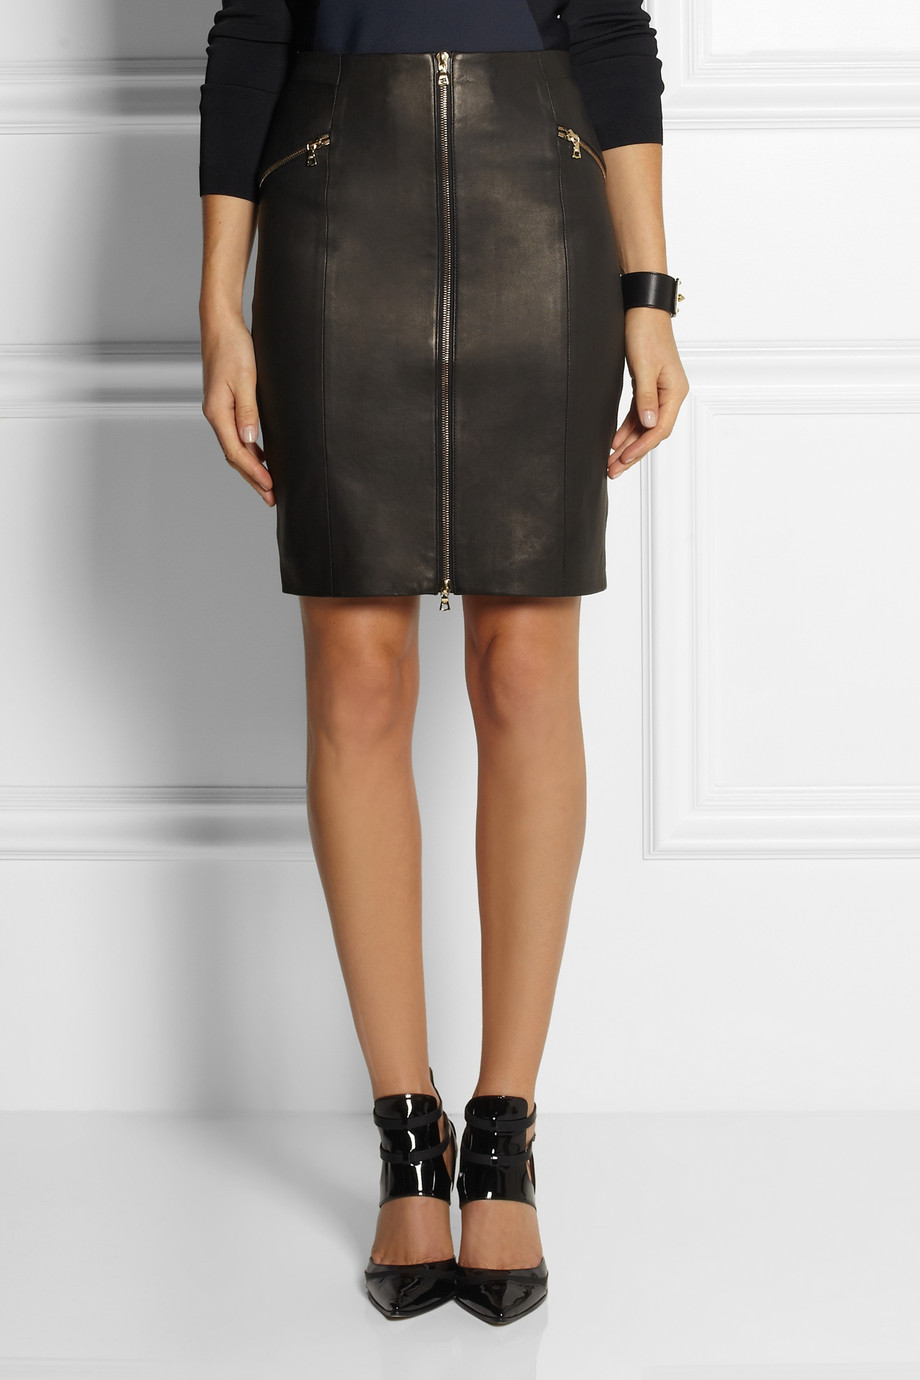 J brand Maxine Zip-front Leather Skirt in Black | Lyst